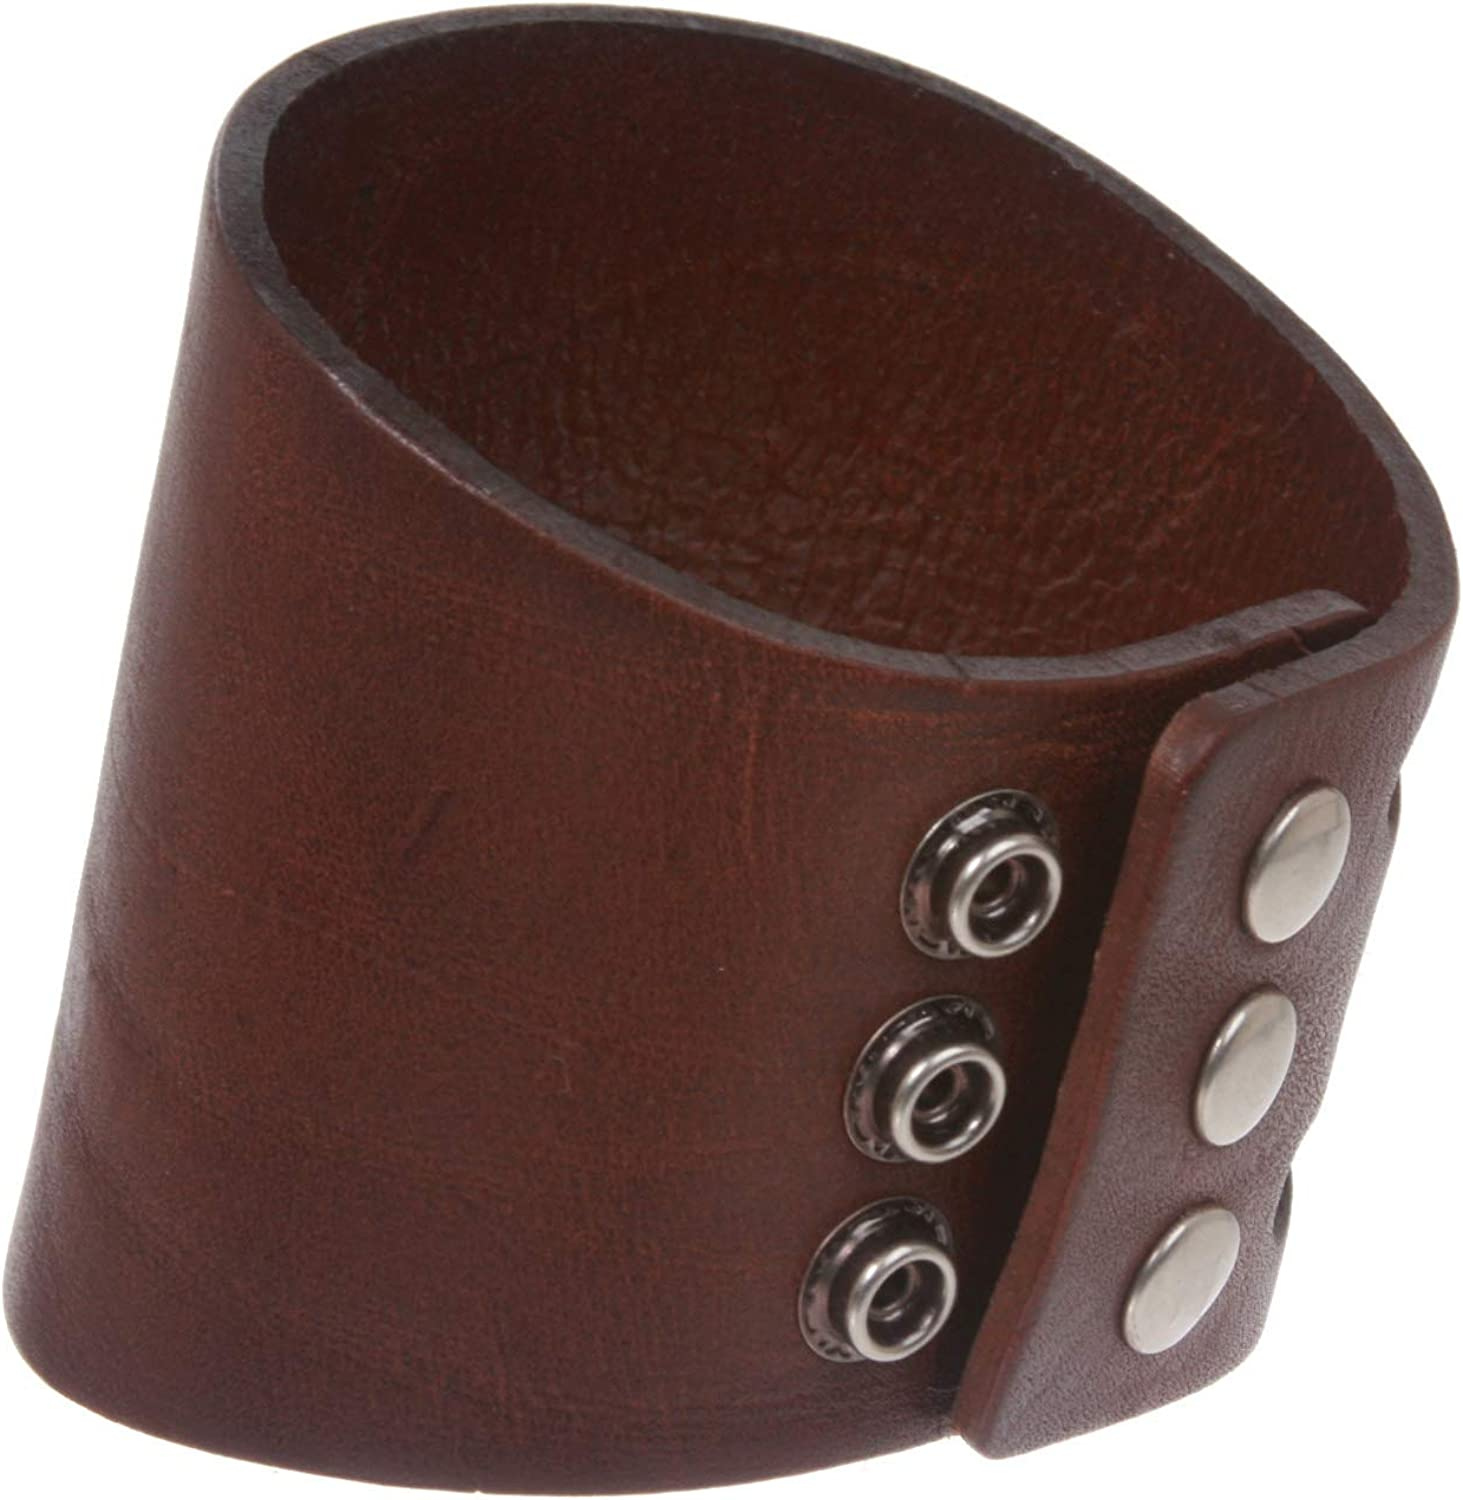 Genuine Leather Wristband with Snap Closure in Black with Red Leather Covered Buttons